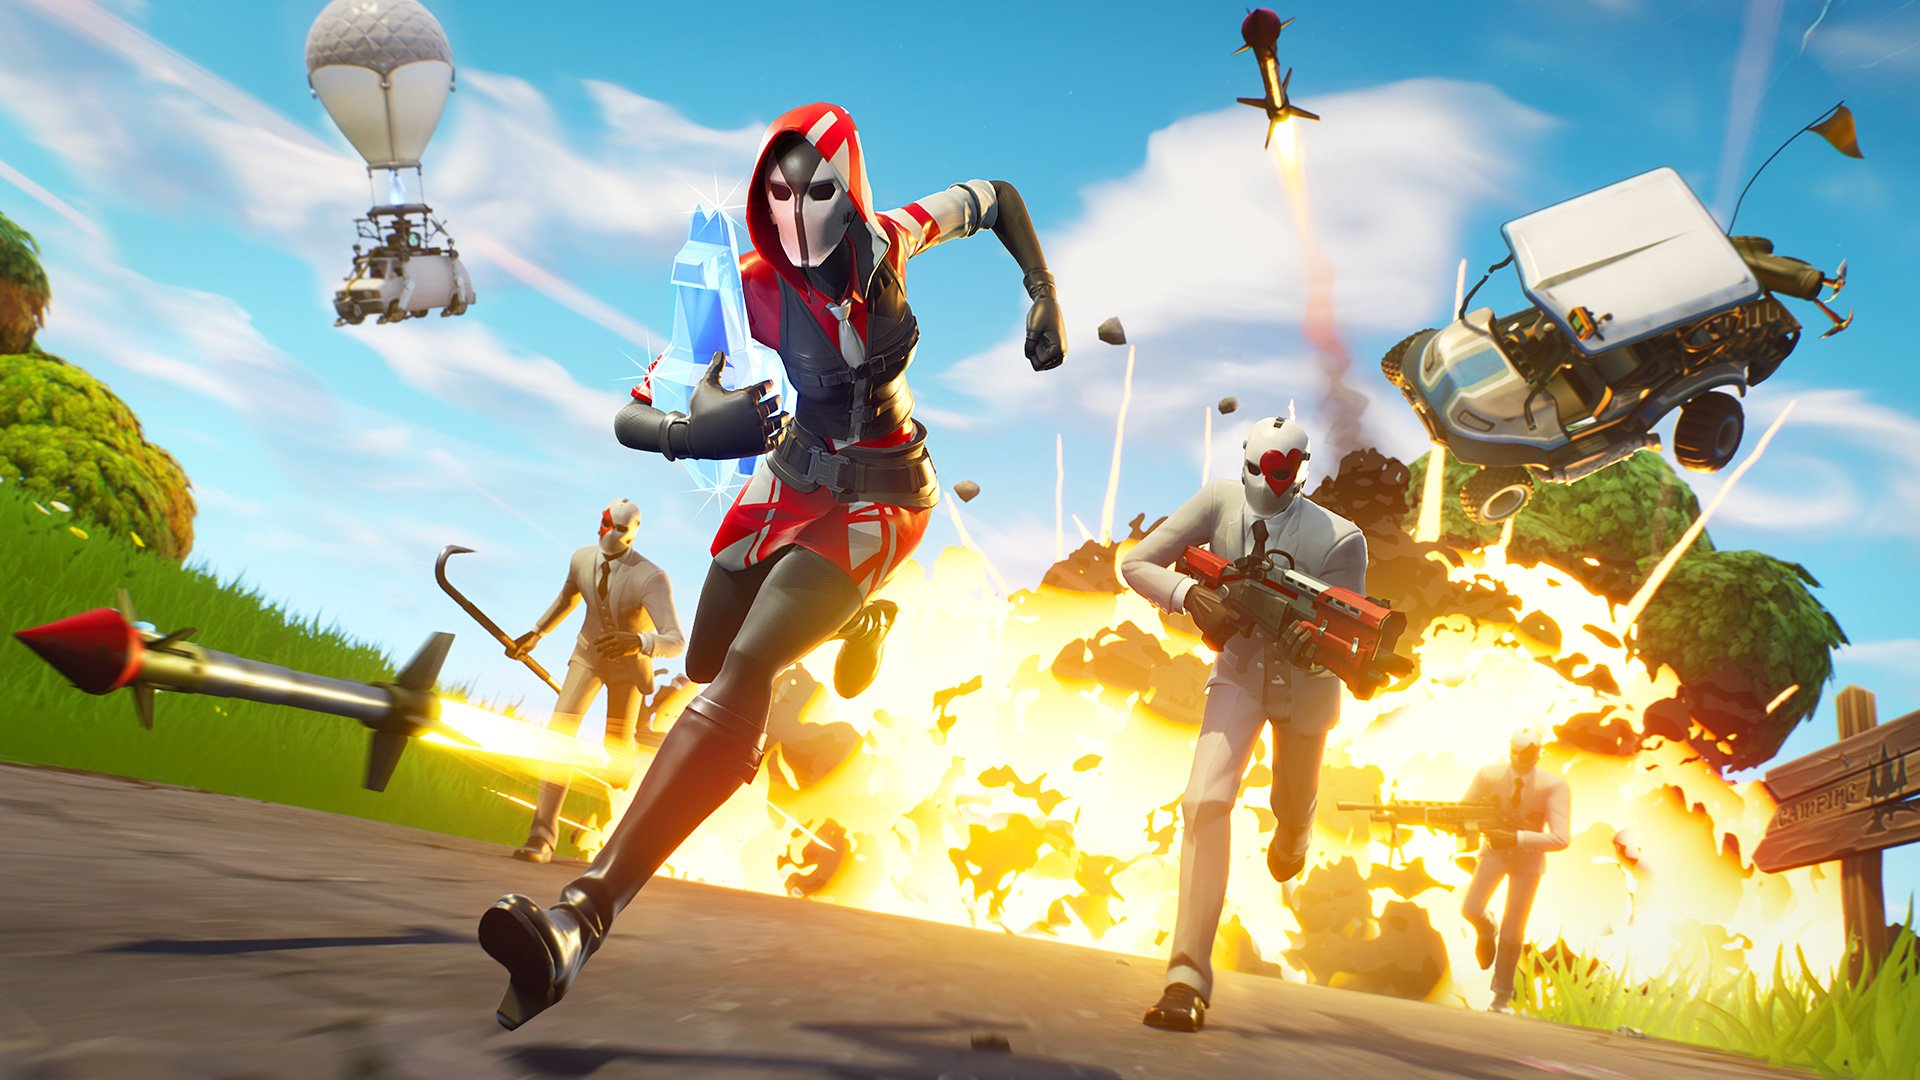 Fortnite will offer a PS4 unlink feature and account merging